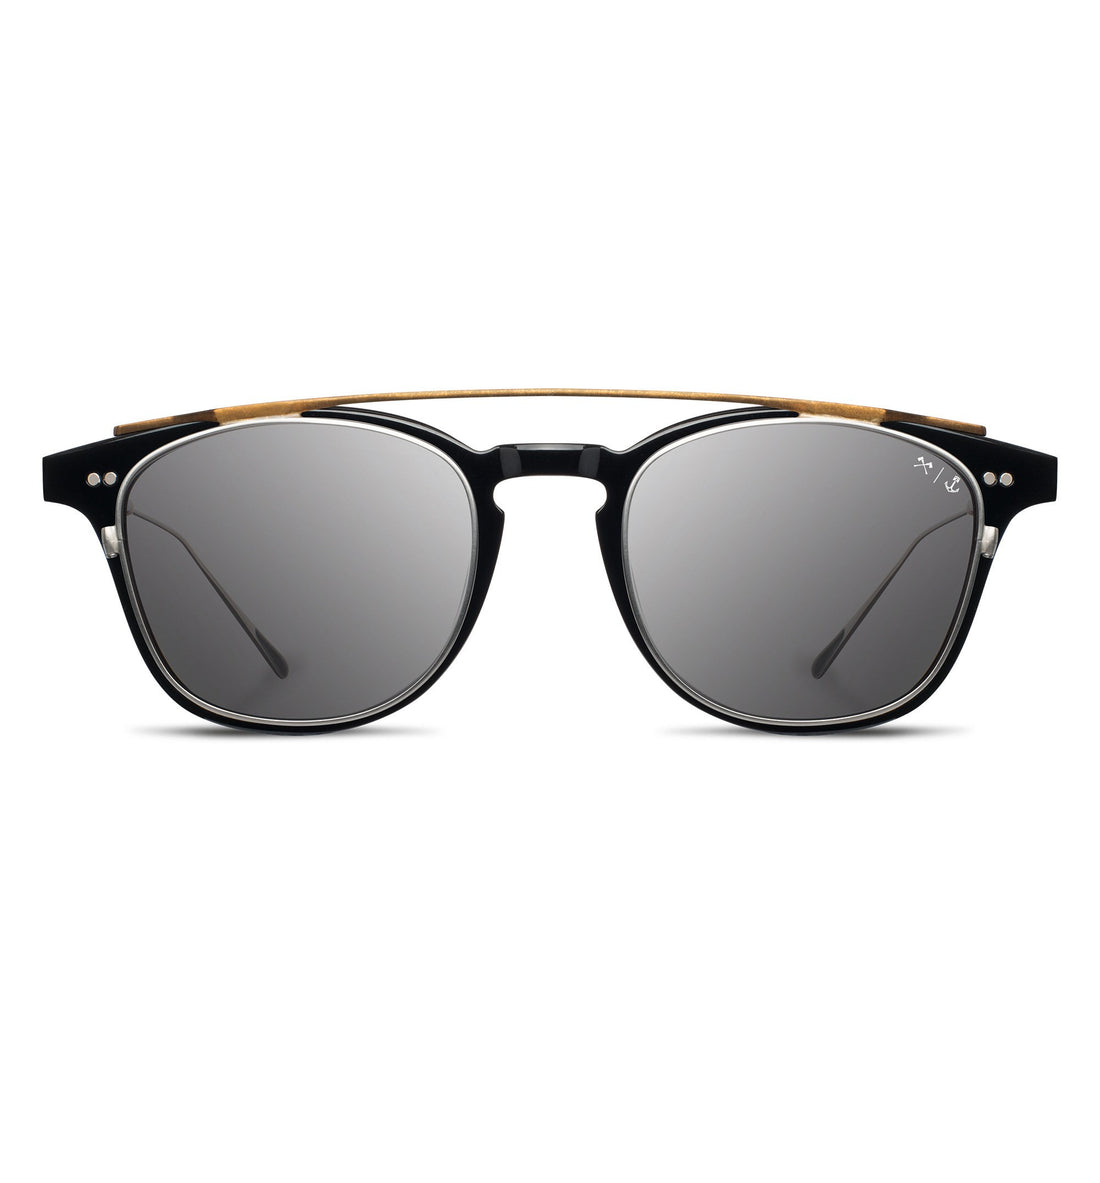 InR x Shwood - Kennedy Clip - Black/Grey/Polarized - Sunglasses - Iron and Resin